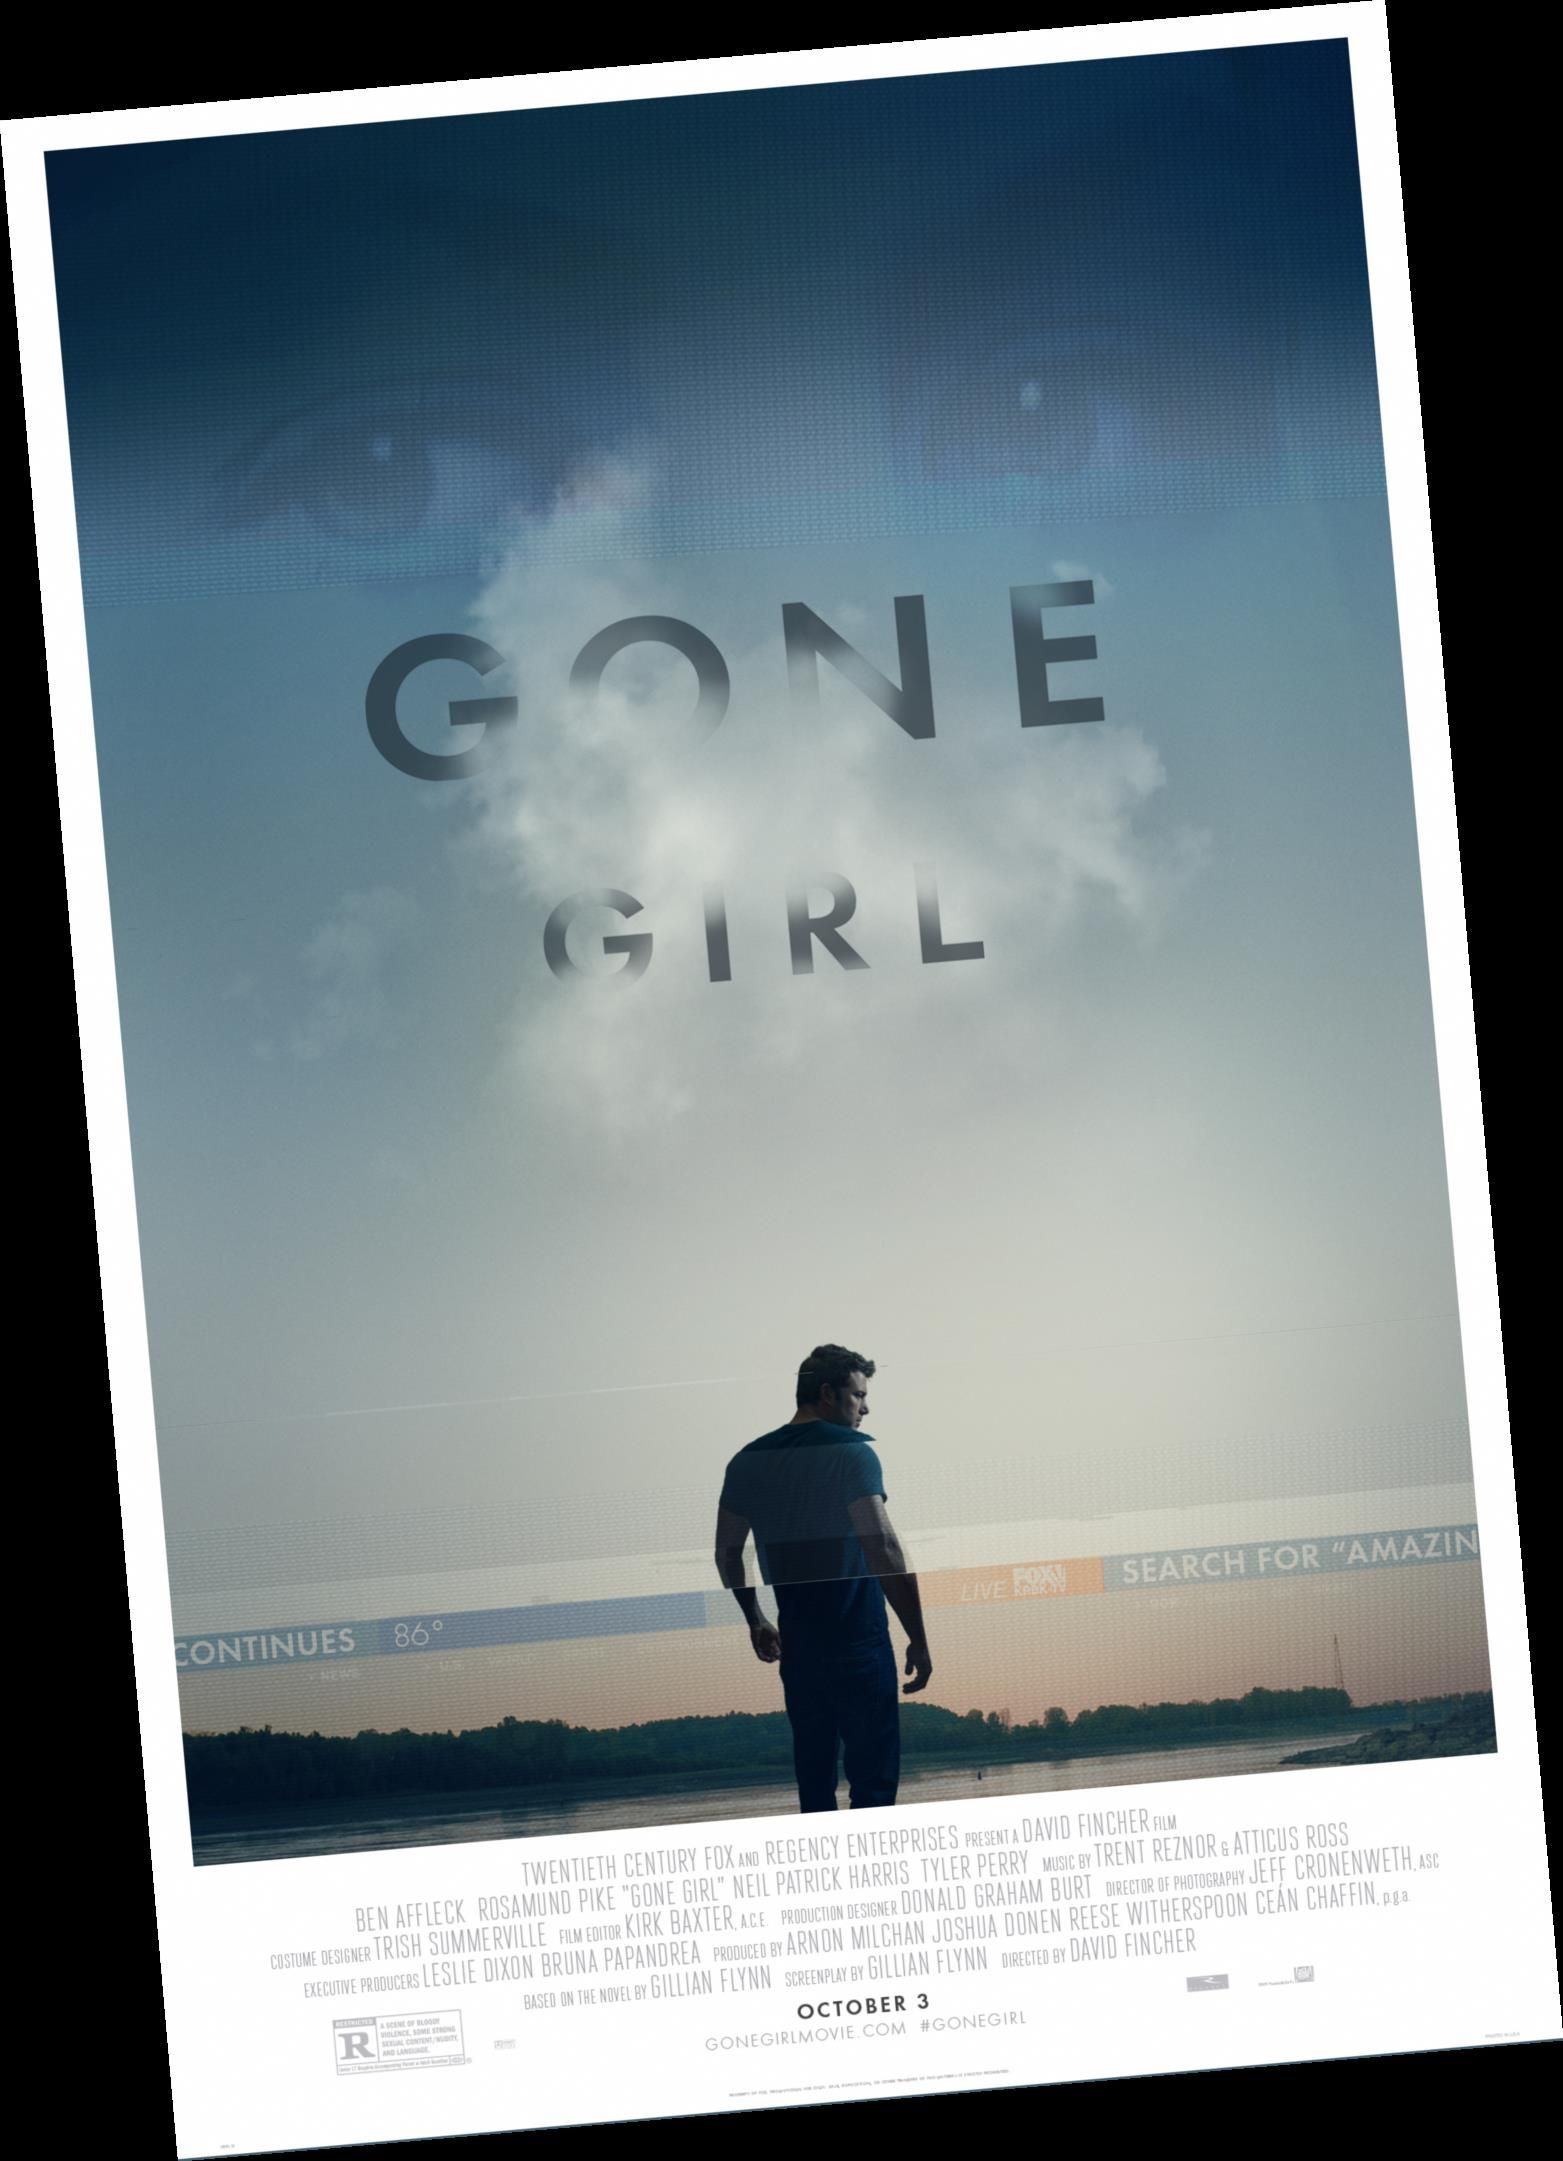 gone girl in hindi torrent hdtvrip online gone girl 2014 in hindi torrent hdtvrip online megavideo butler blu ray